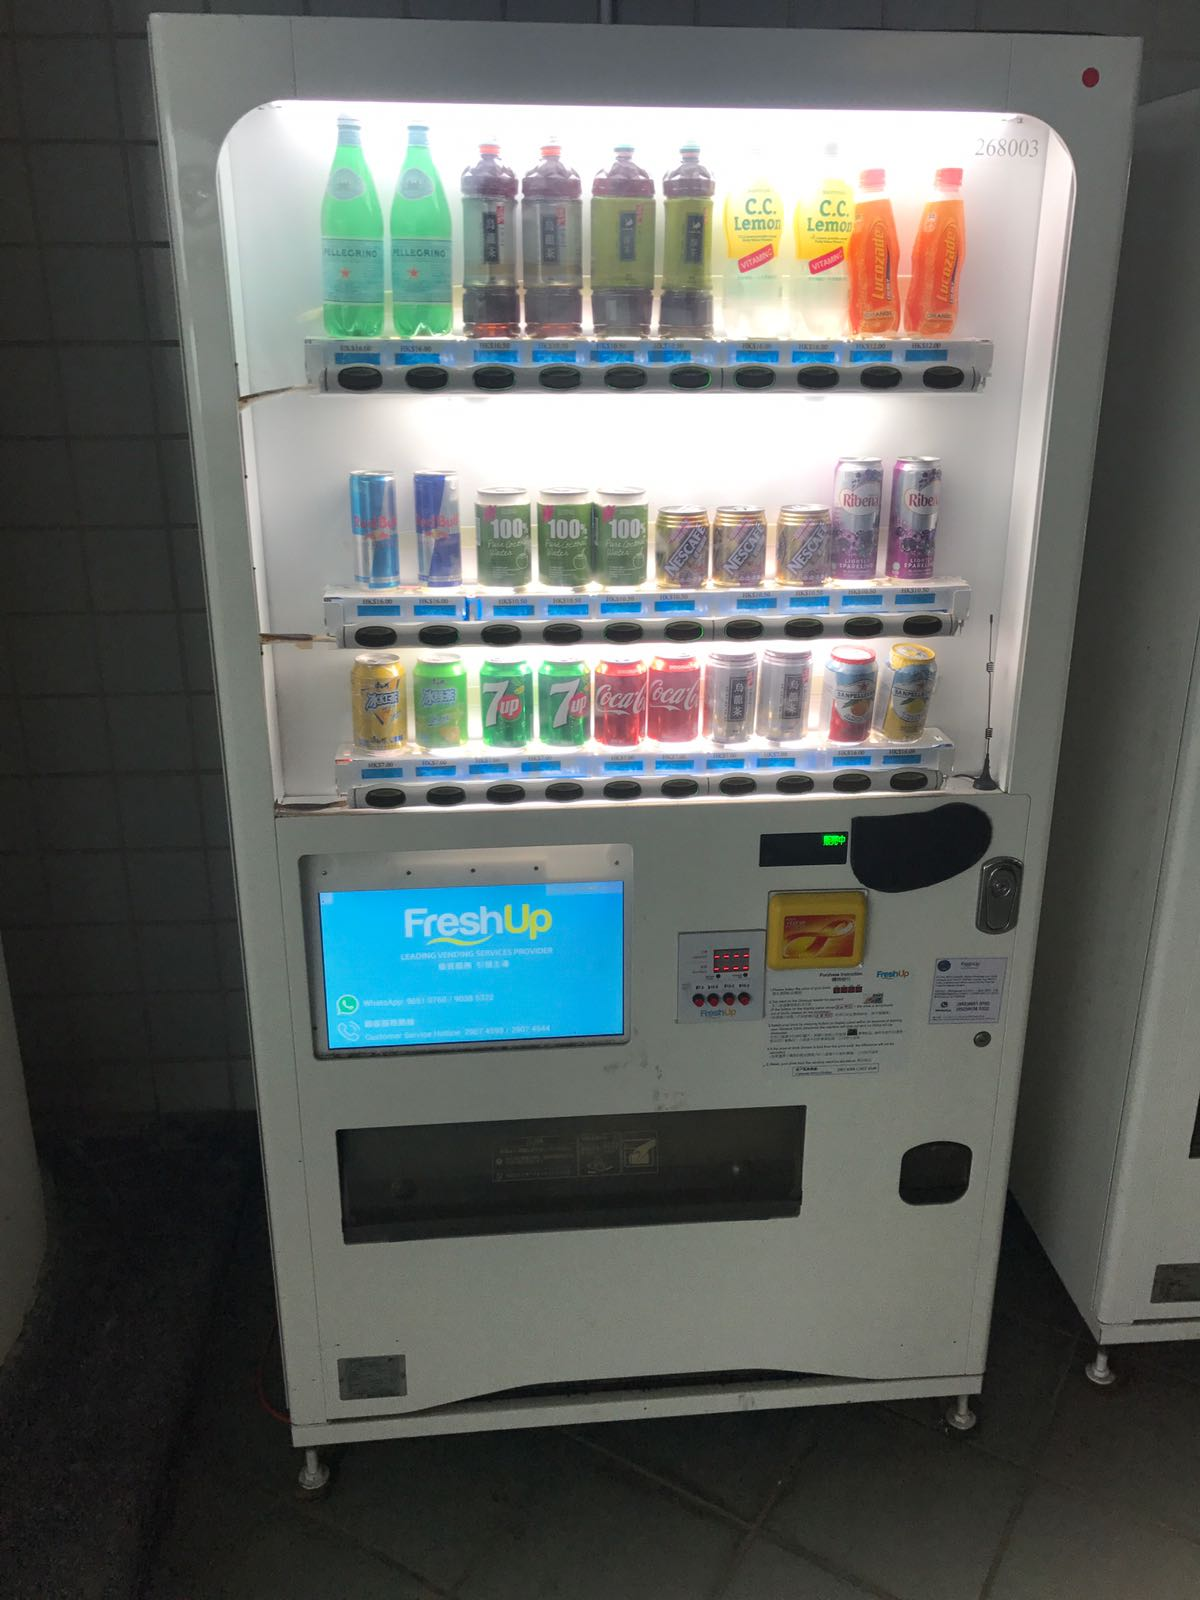 Freshup, vending machine hk, interactive, food, beverage, smart retail, convenient, vending services, professional, universities, HKUST, college